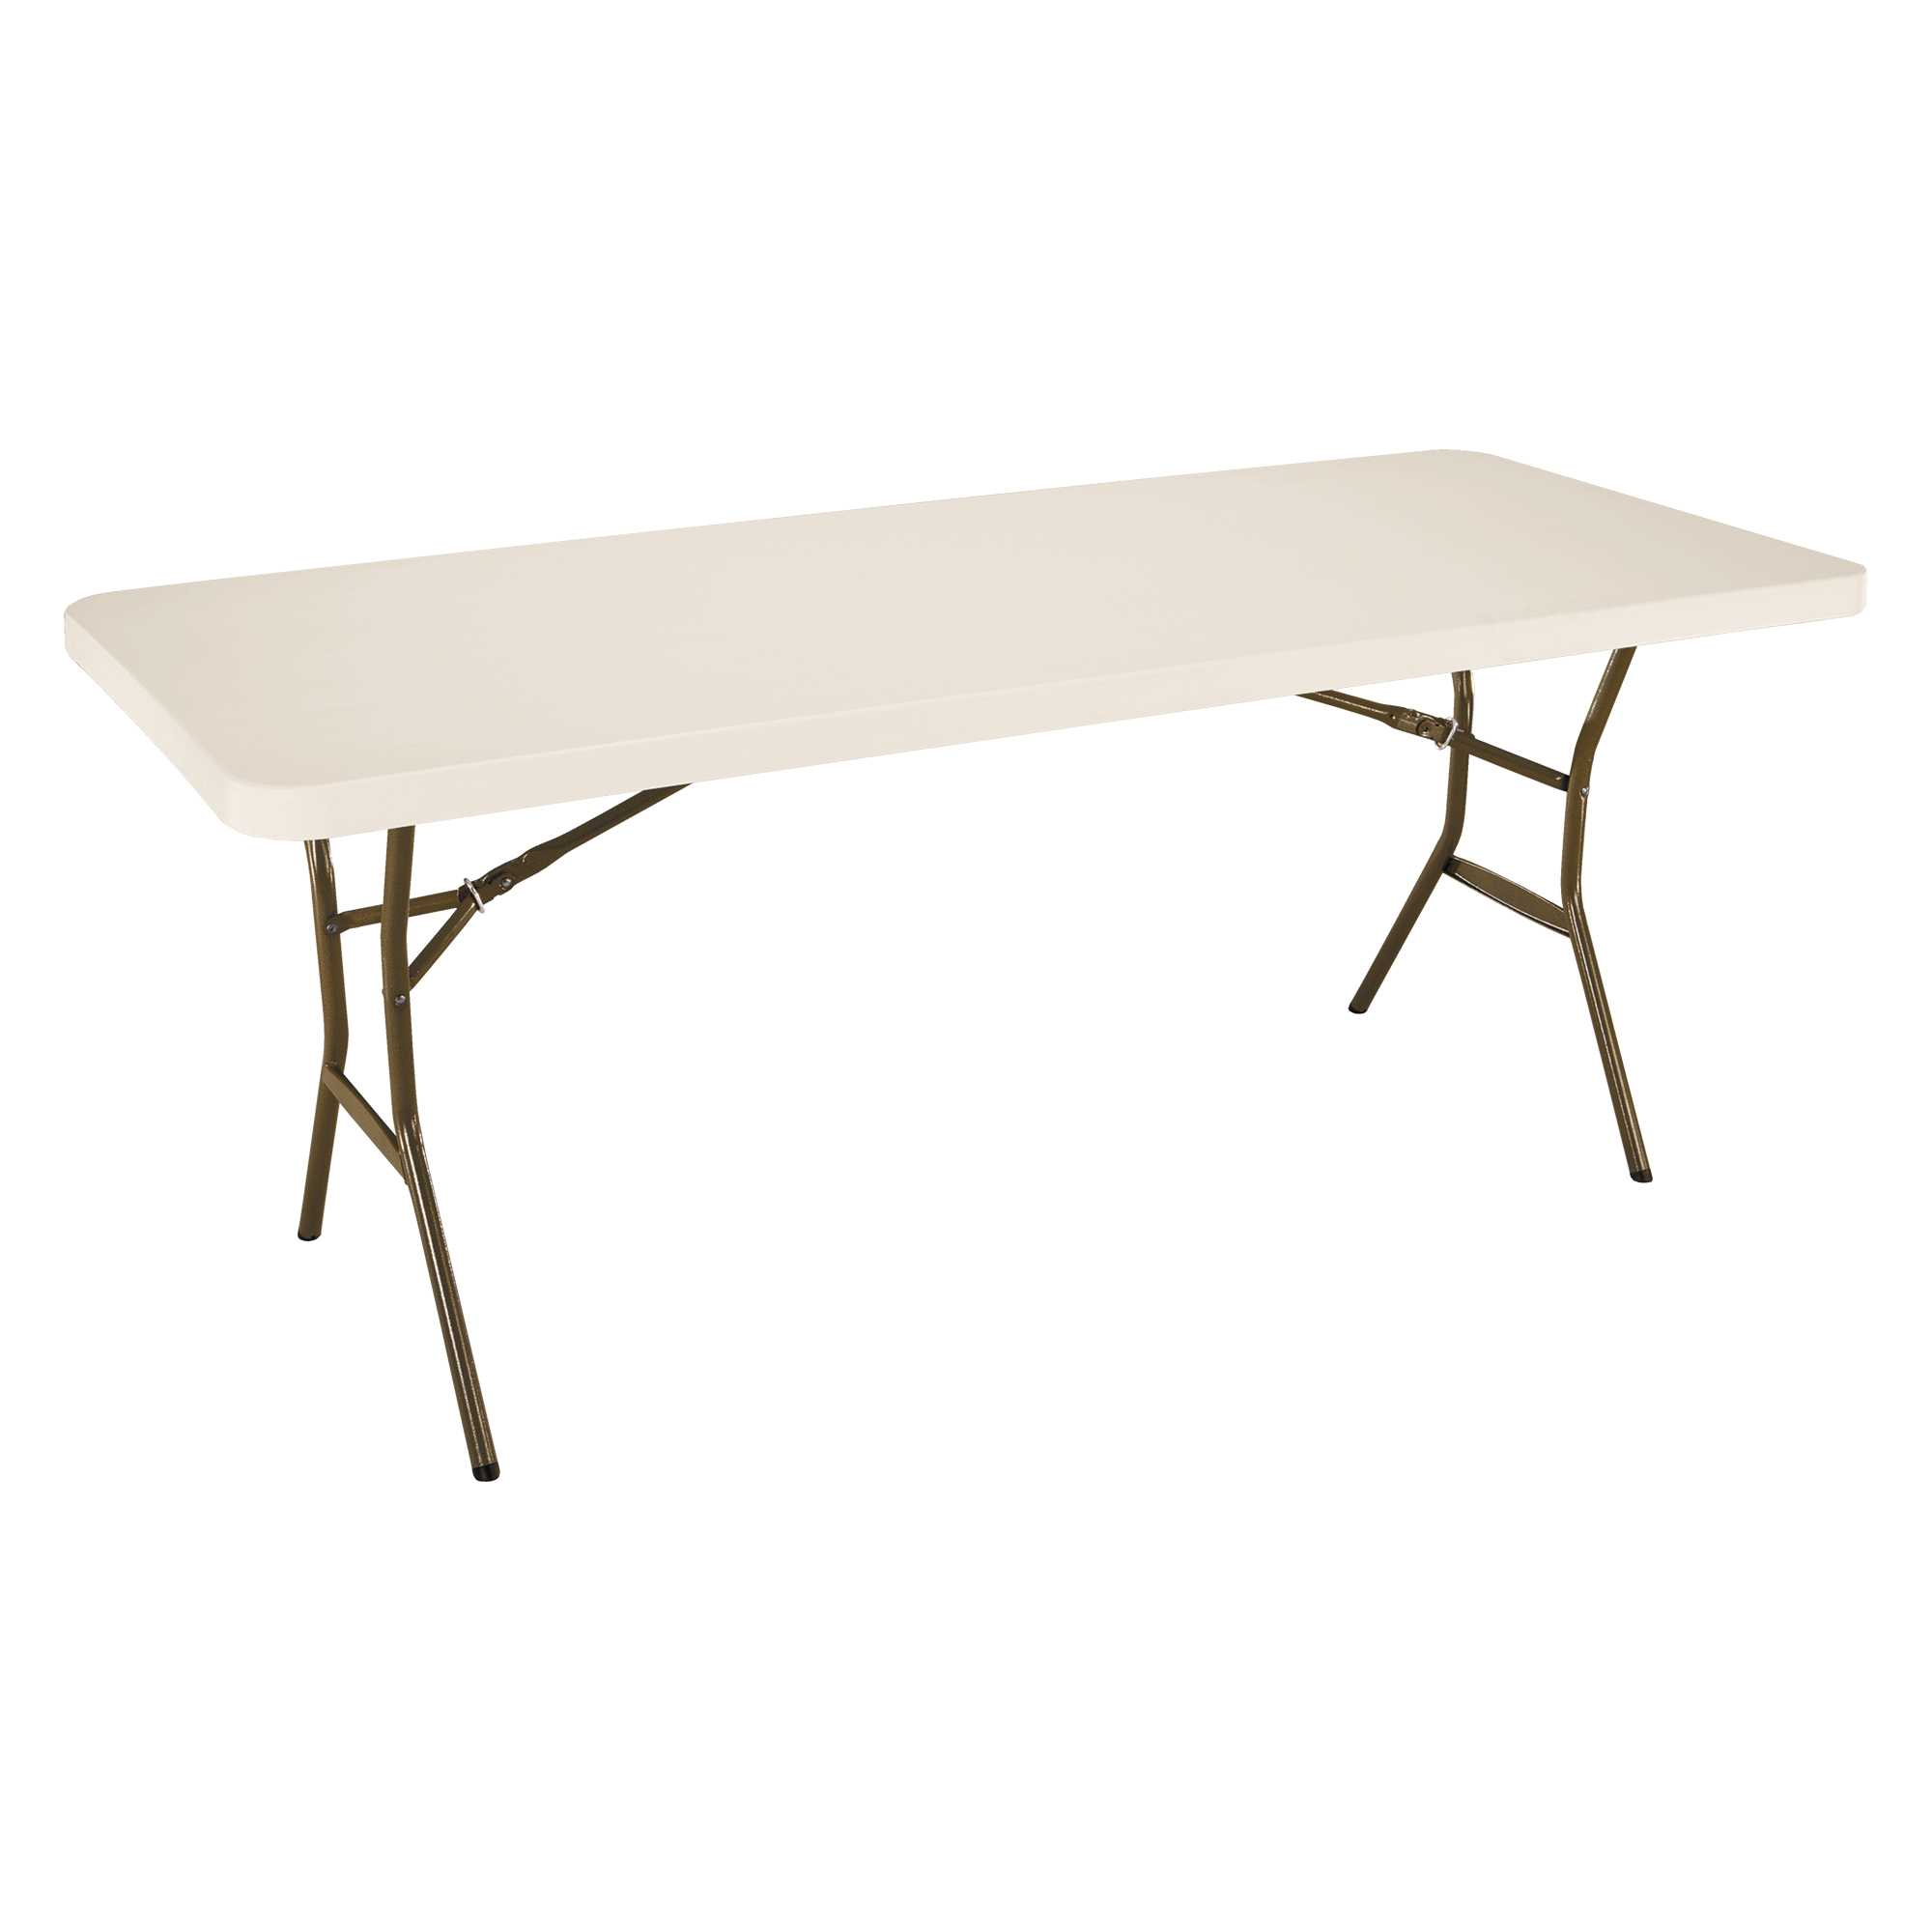 Table pliante rectangulaire 183cm (beige) / 8 personnes